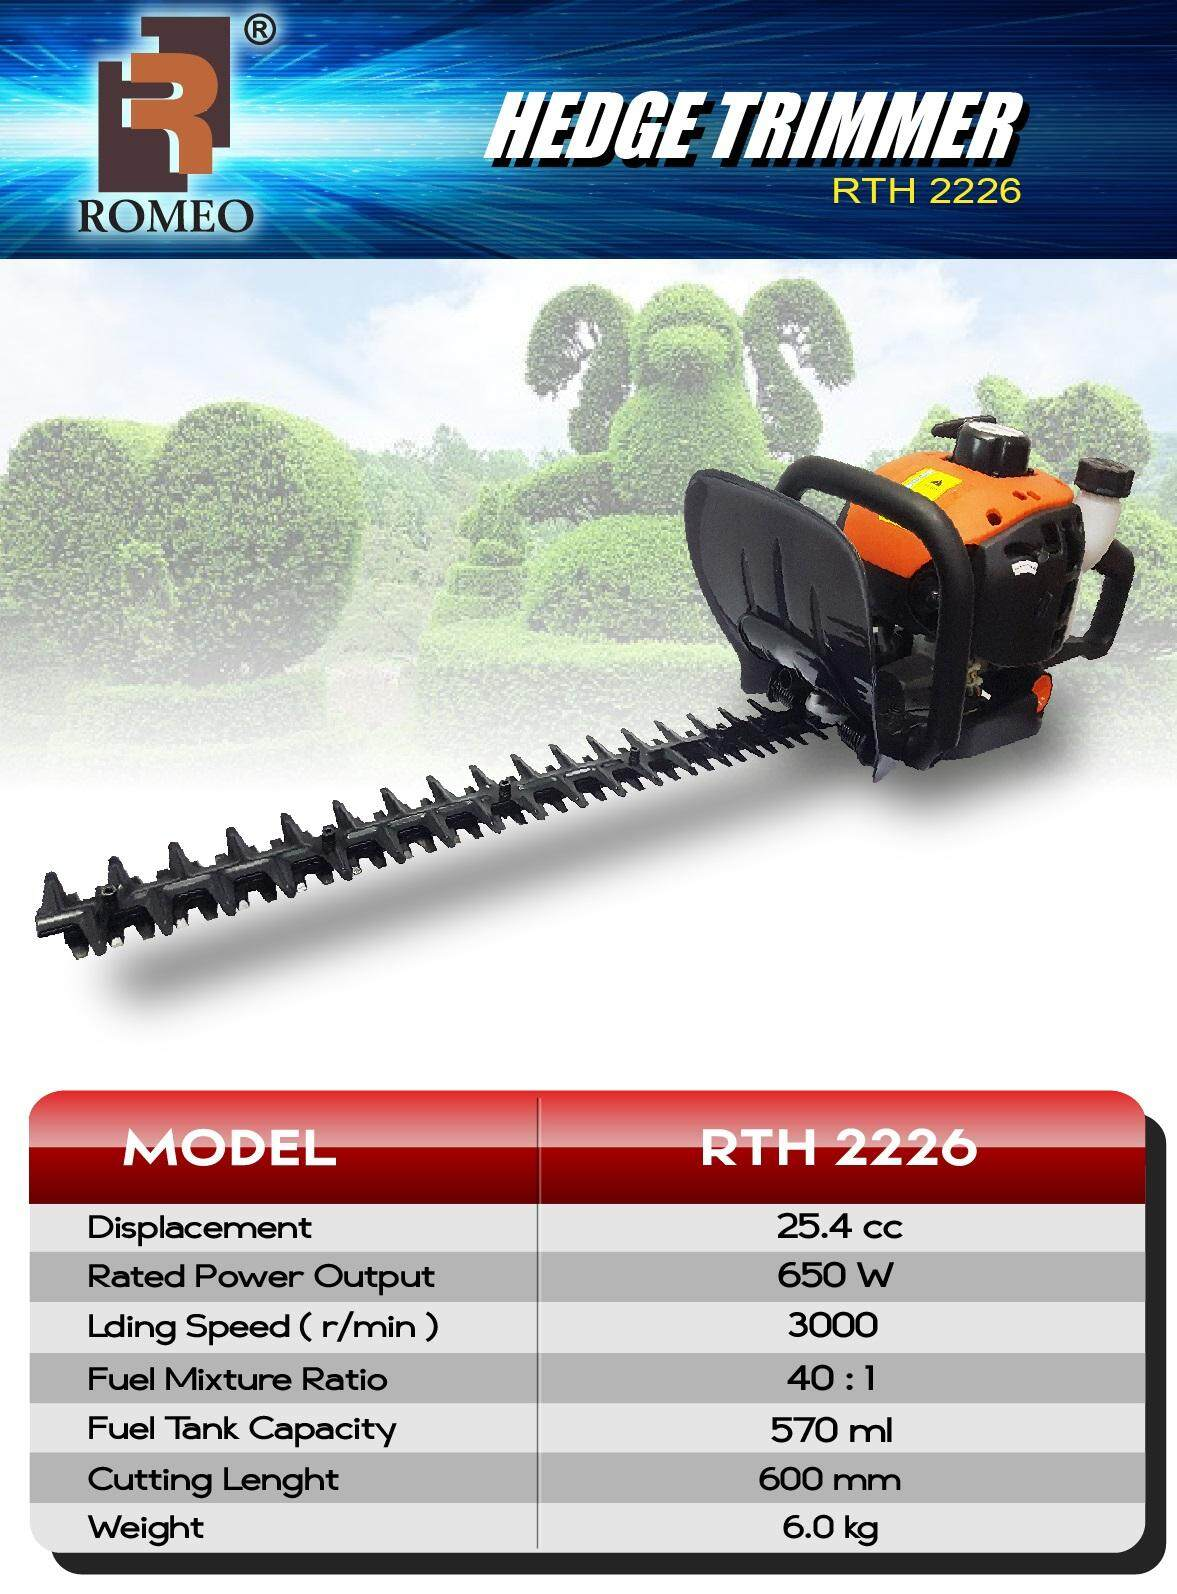 edge trimmer hedge power engine gas petrol grass leaf wall tree saw blade off portable carry cut cutter cutting shear brush bush clean scissor motor lawn mower handle holder hold press side garden tool sharp plant